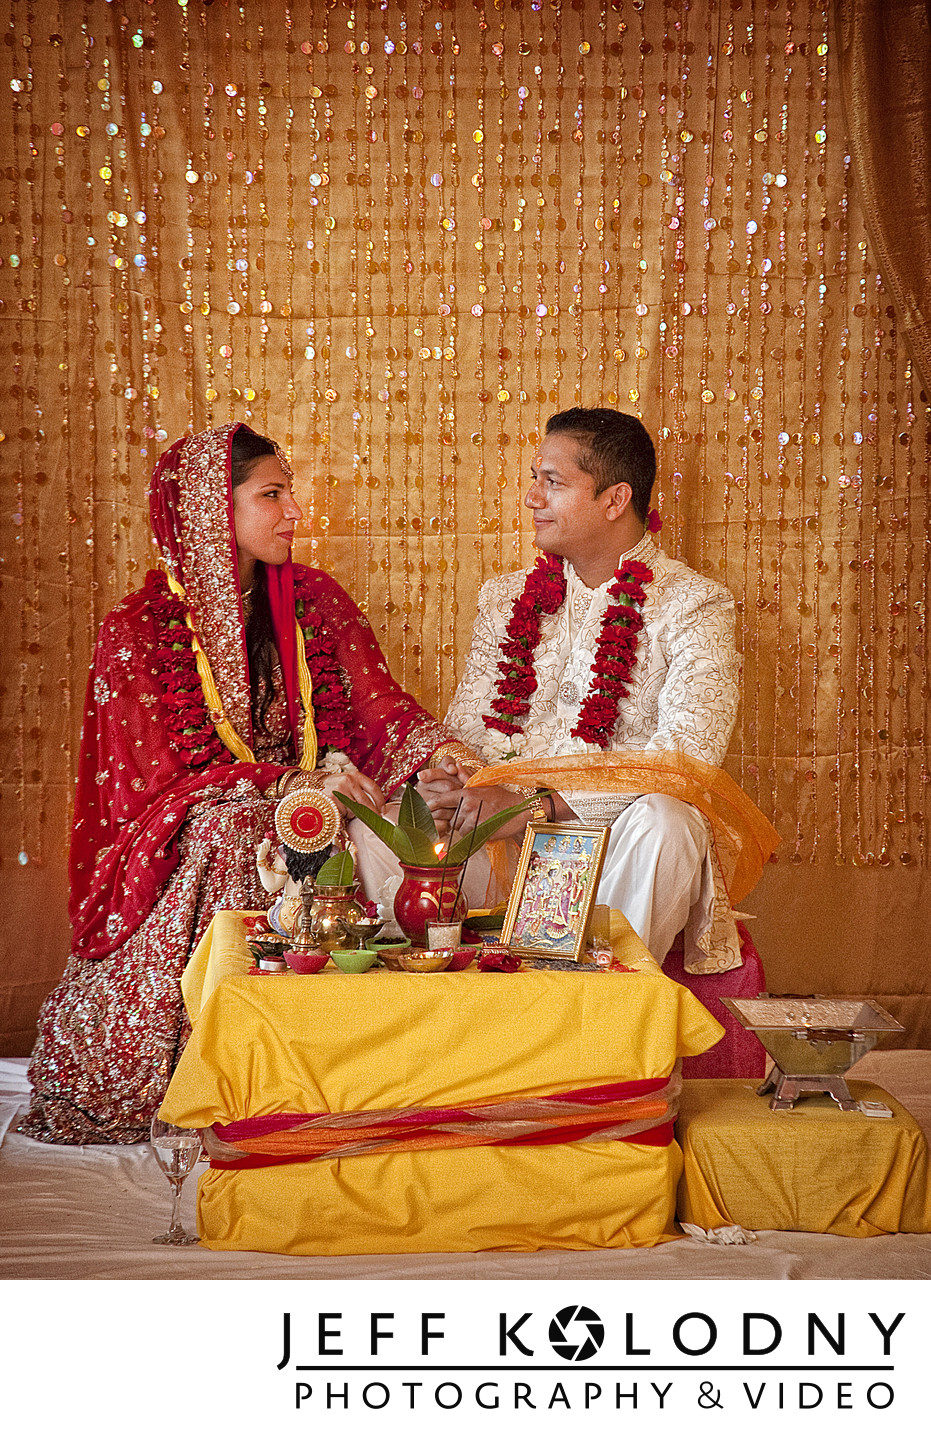 Ceremony picture from an Indian wedding.